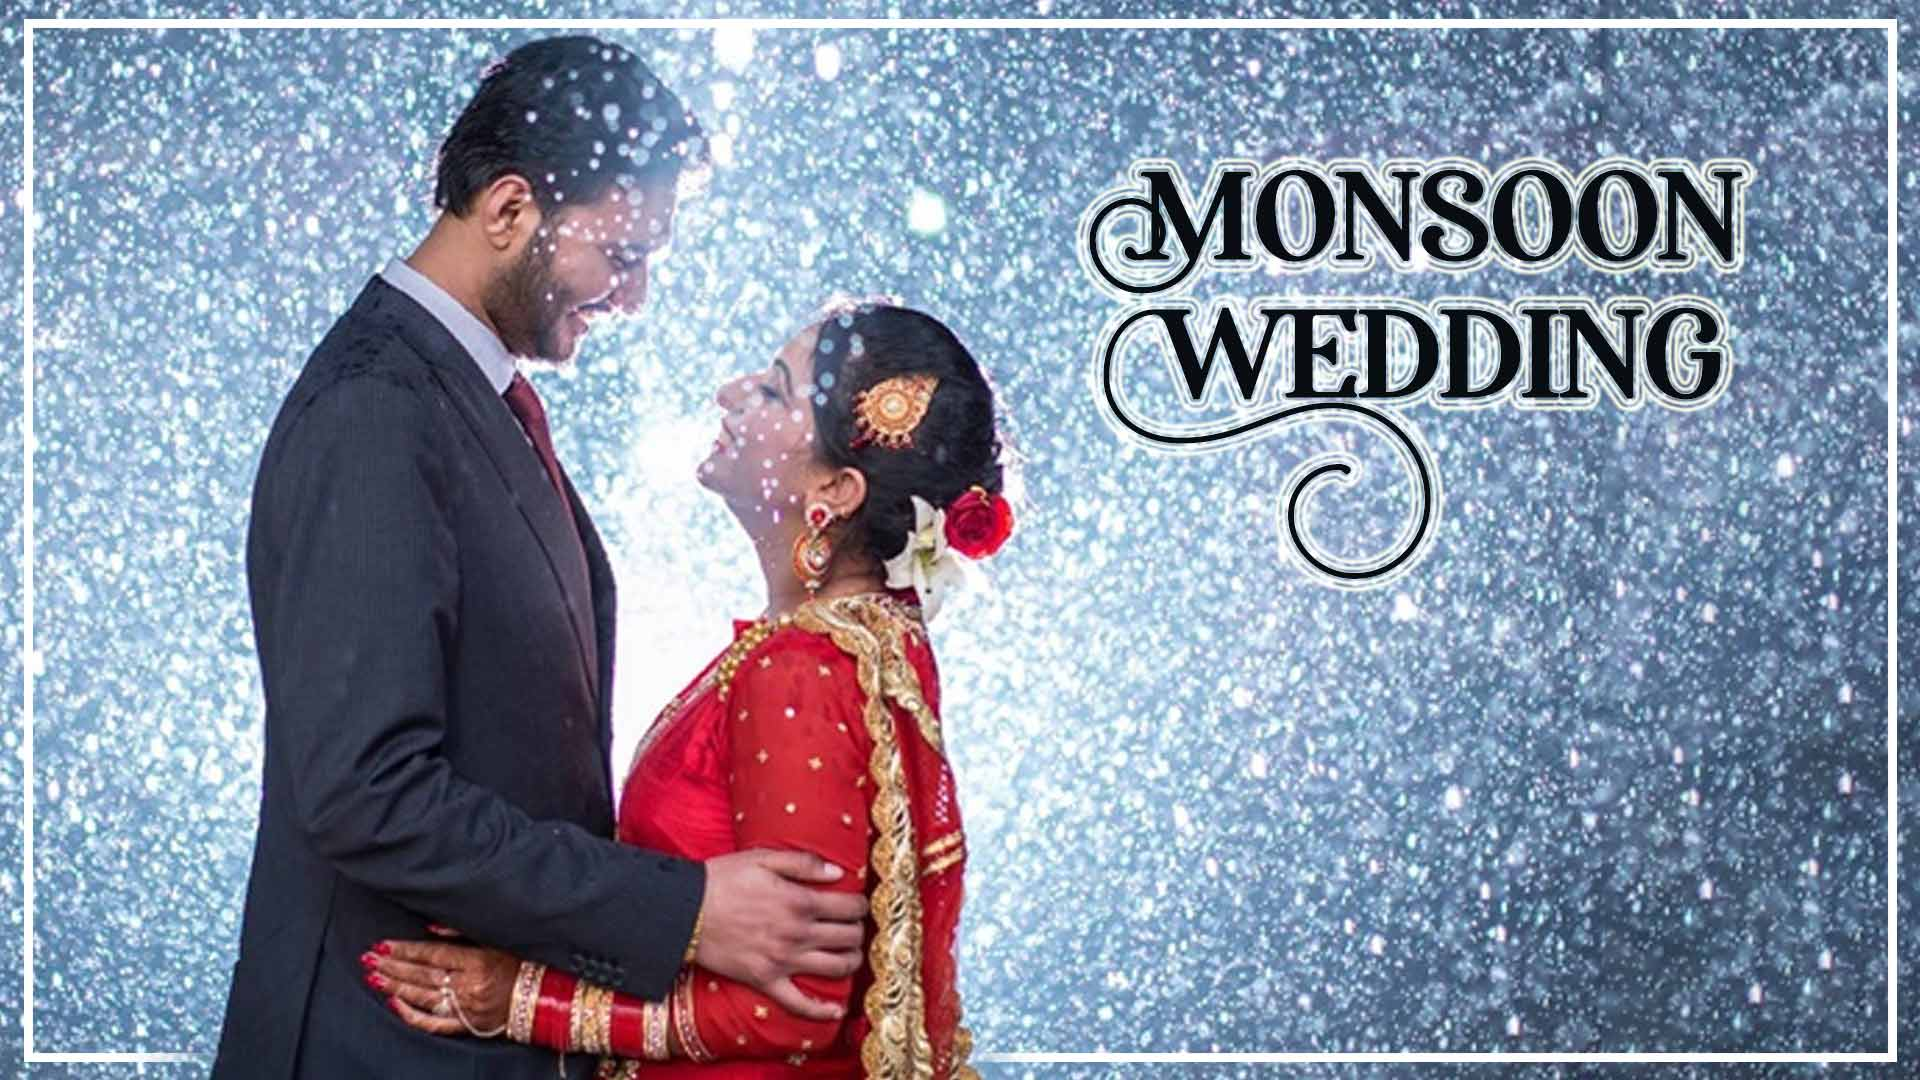 MONSOON WEDDINGS